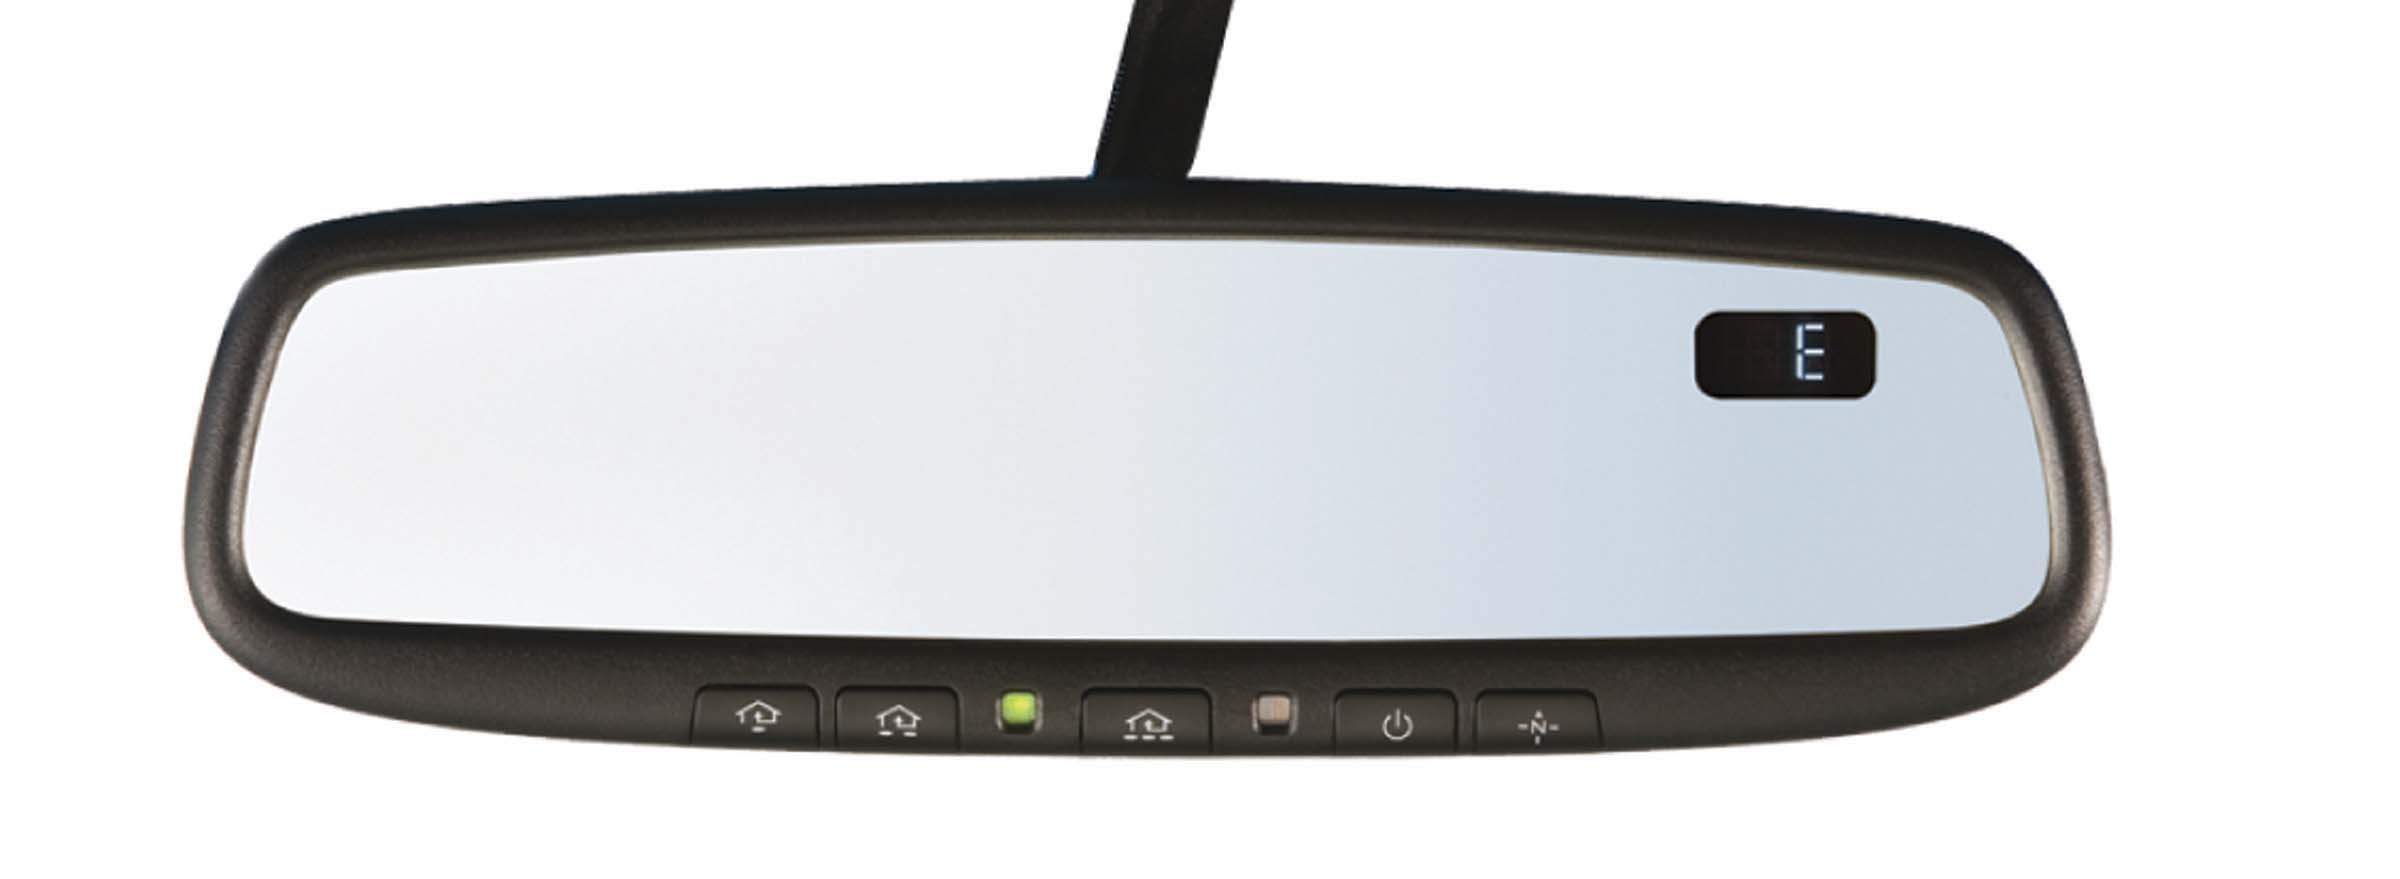 SUBARU Genuine H501SFJ101 Auto-Dimming Mirror